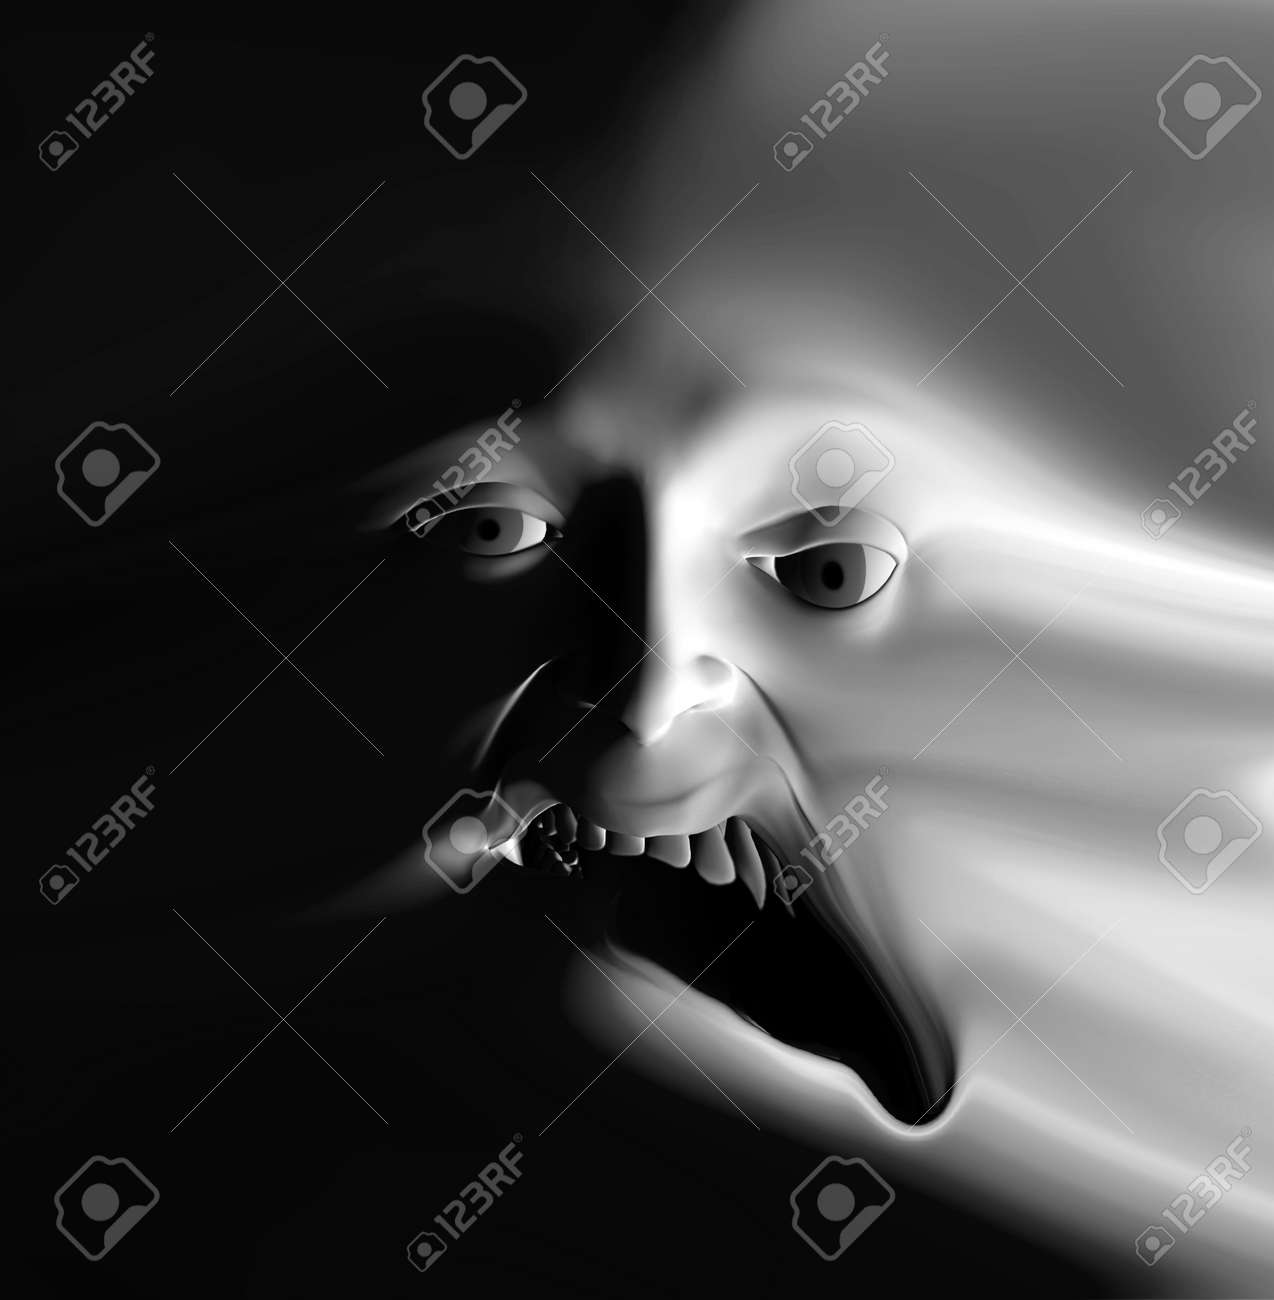 My vision of a abstract nightmare with a face that could be in great pain or could be some form of nasty ghost. Stock Photo - 1104882